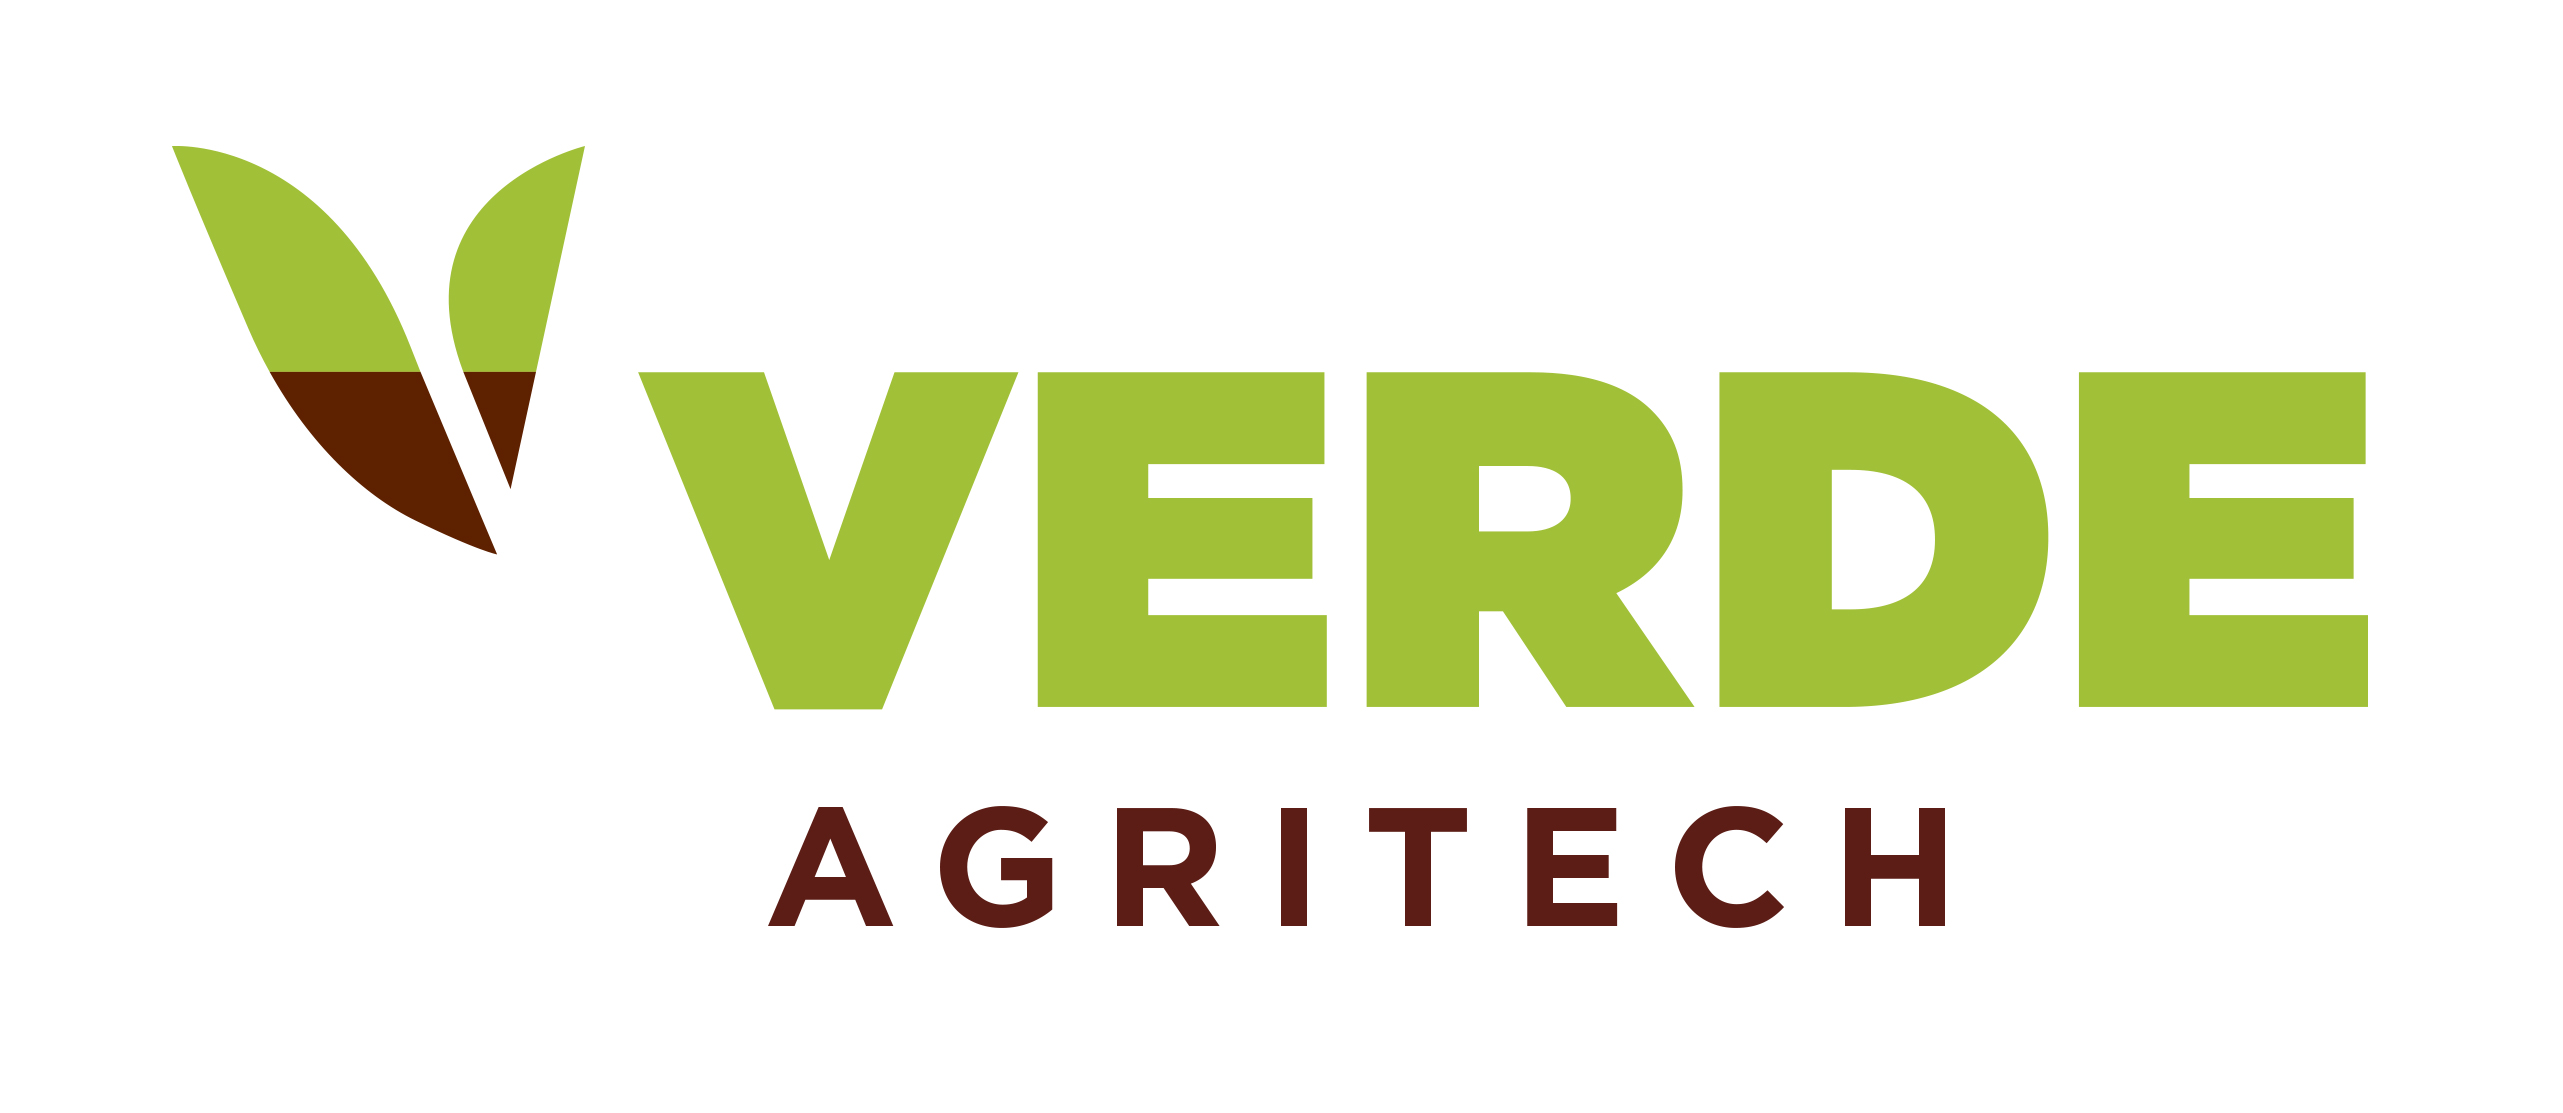 233,000 Tonnes per Year License Granted to Verde